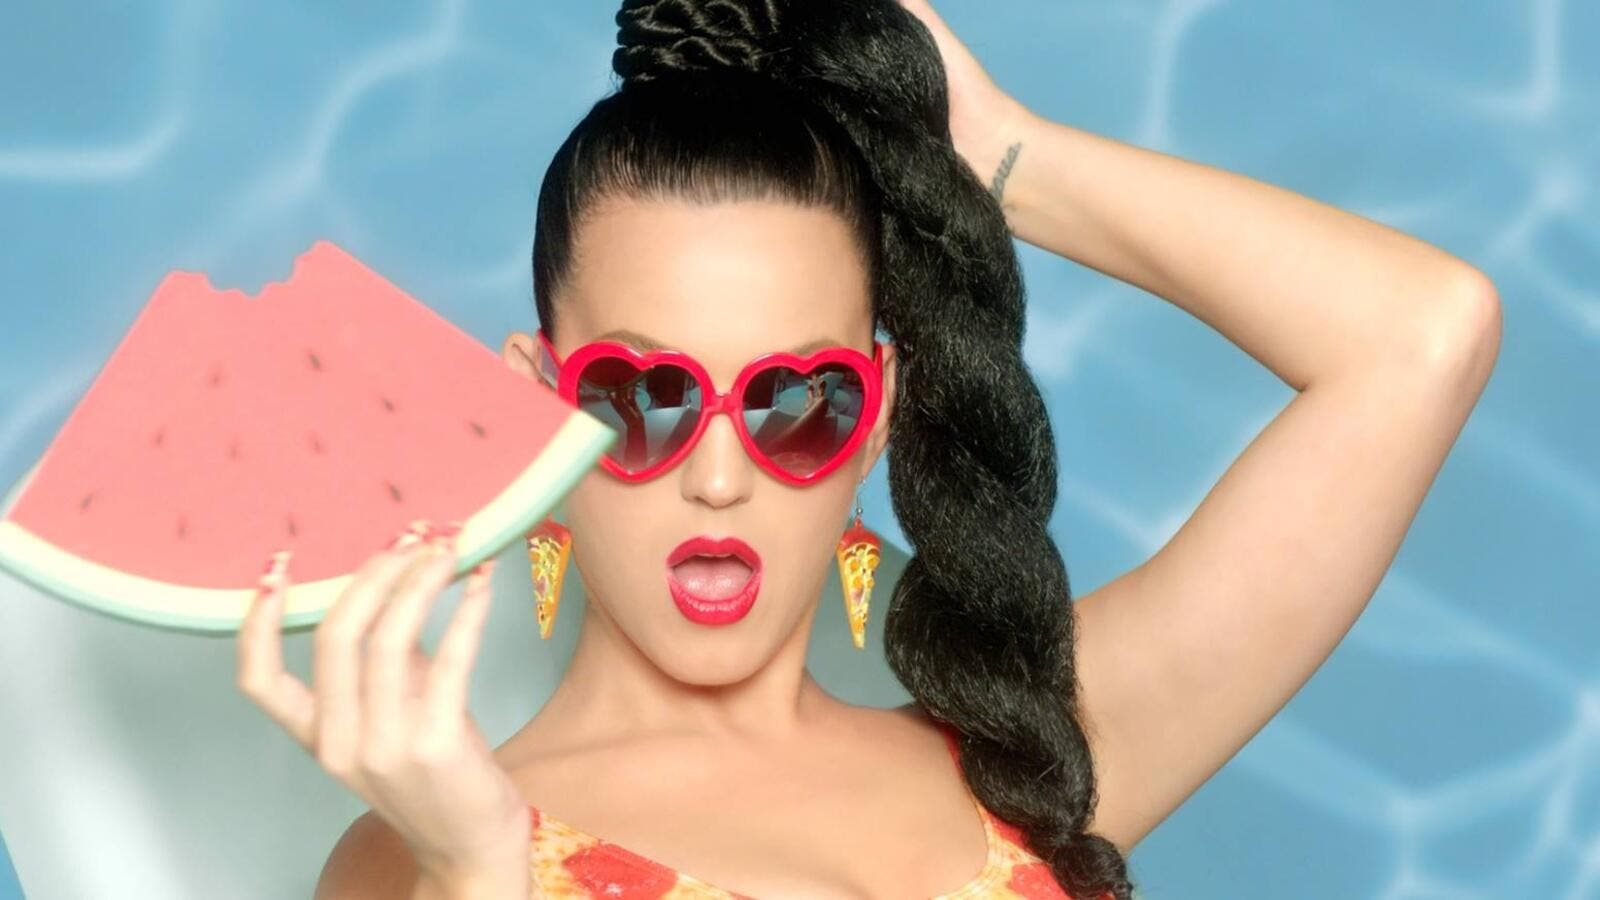 American singer Katy Perry will perform at the Dubai Airshow in November. (Facebook)